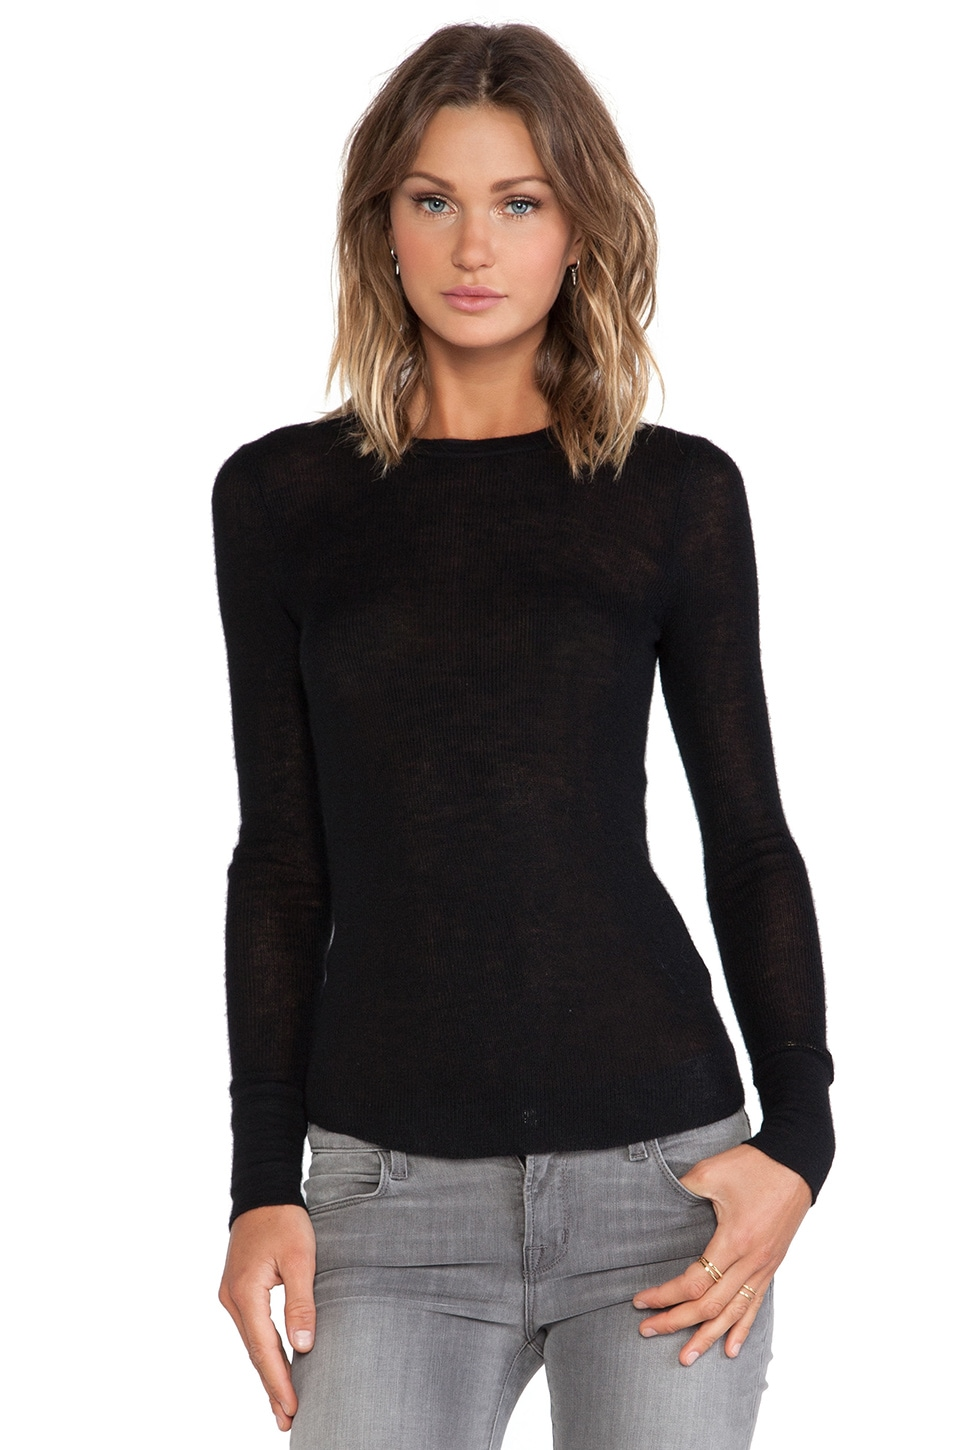 Citizens of Humanity Cashmere Thermal in Black